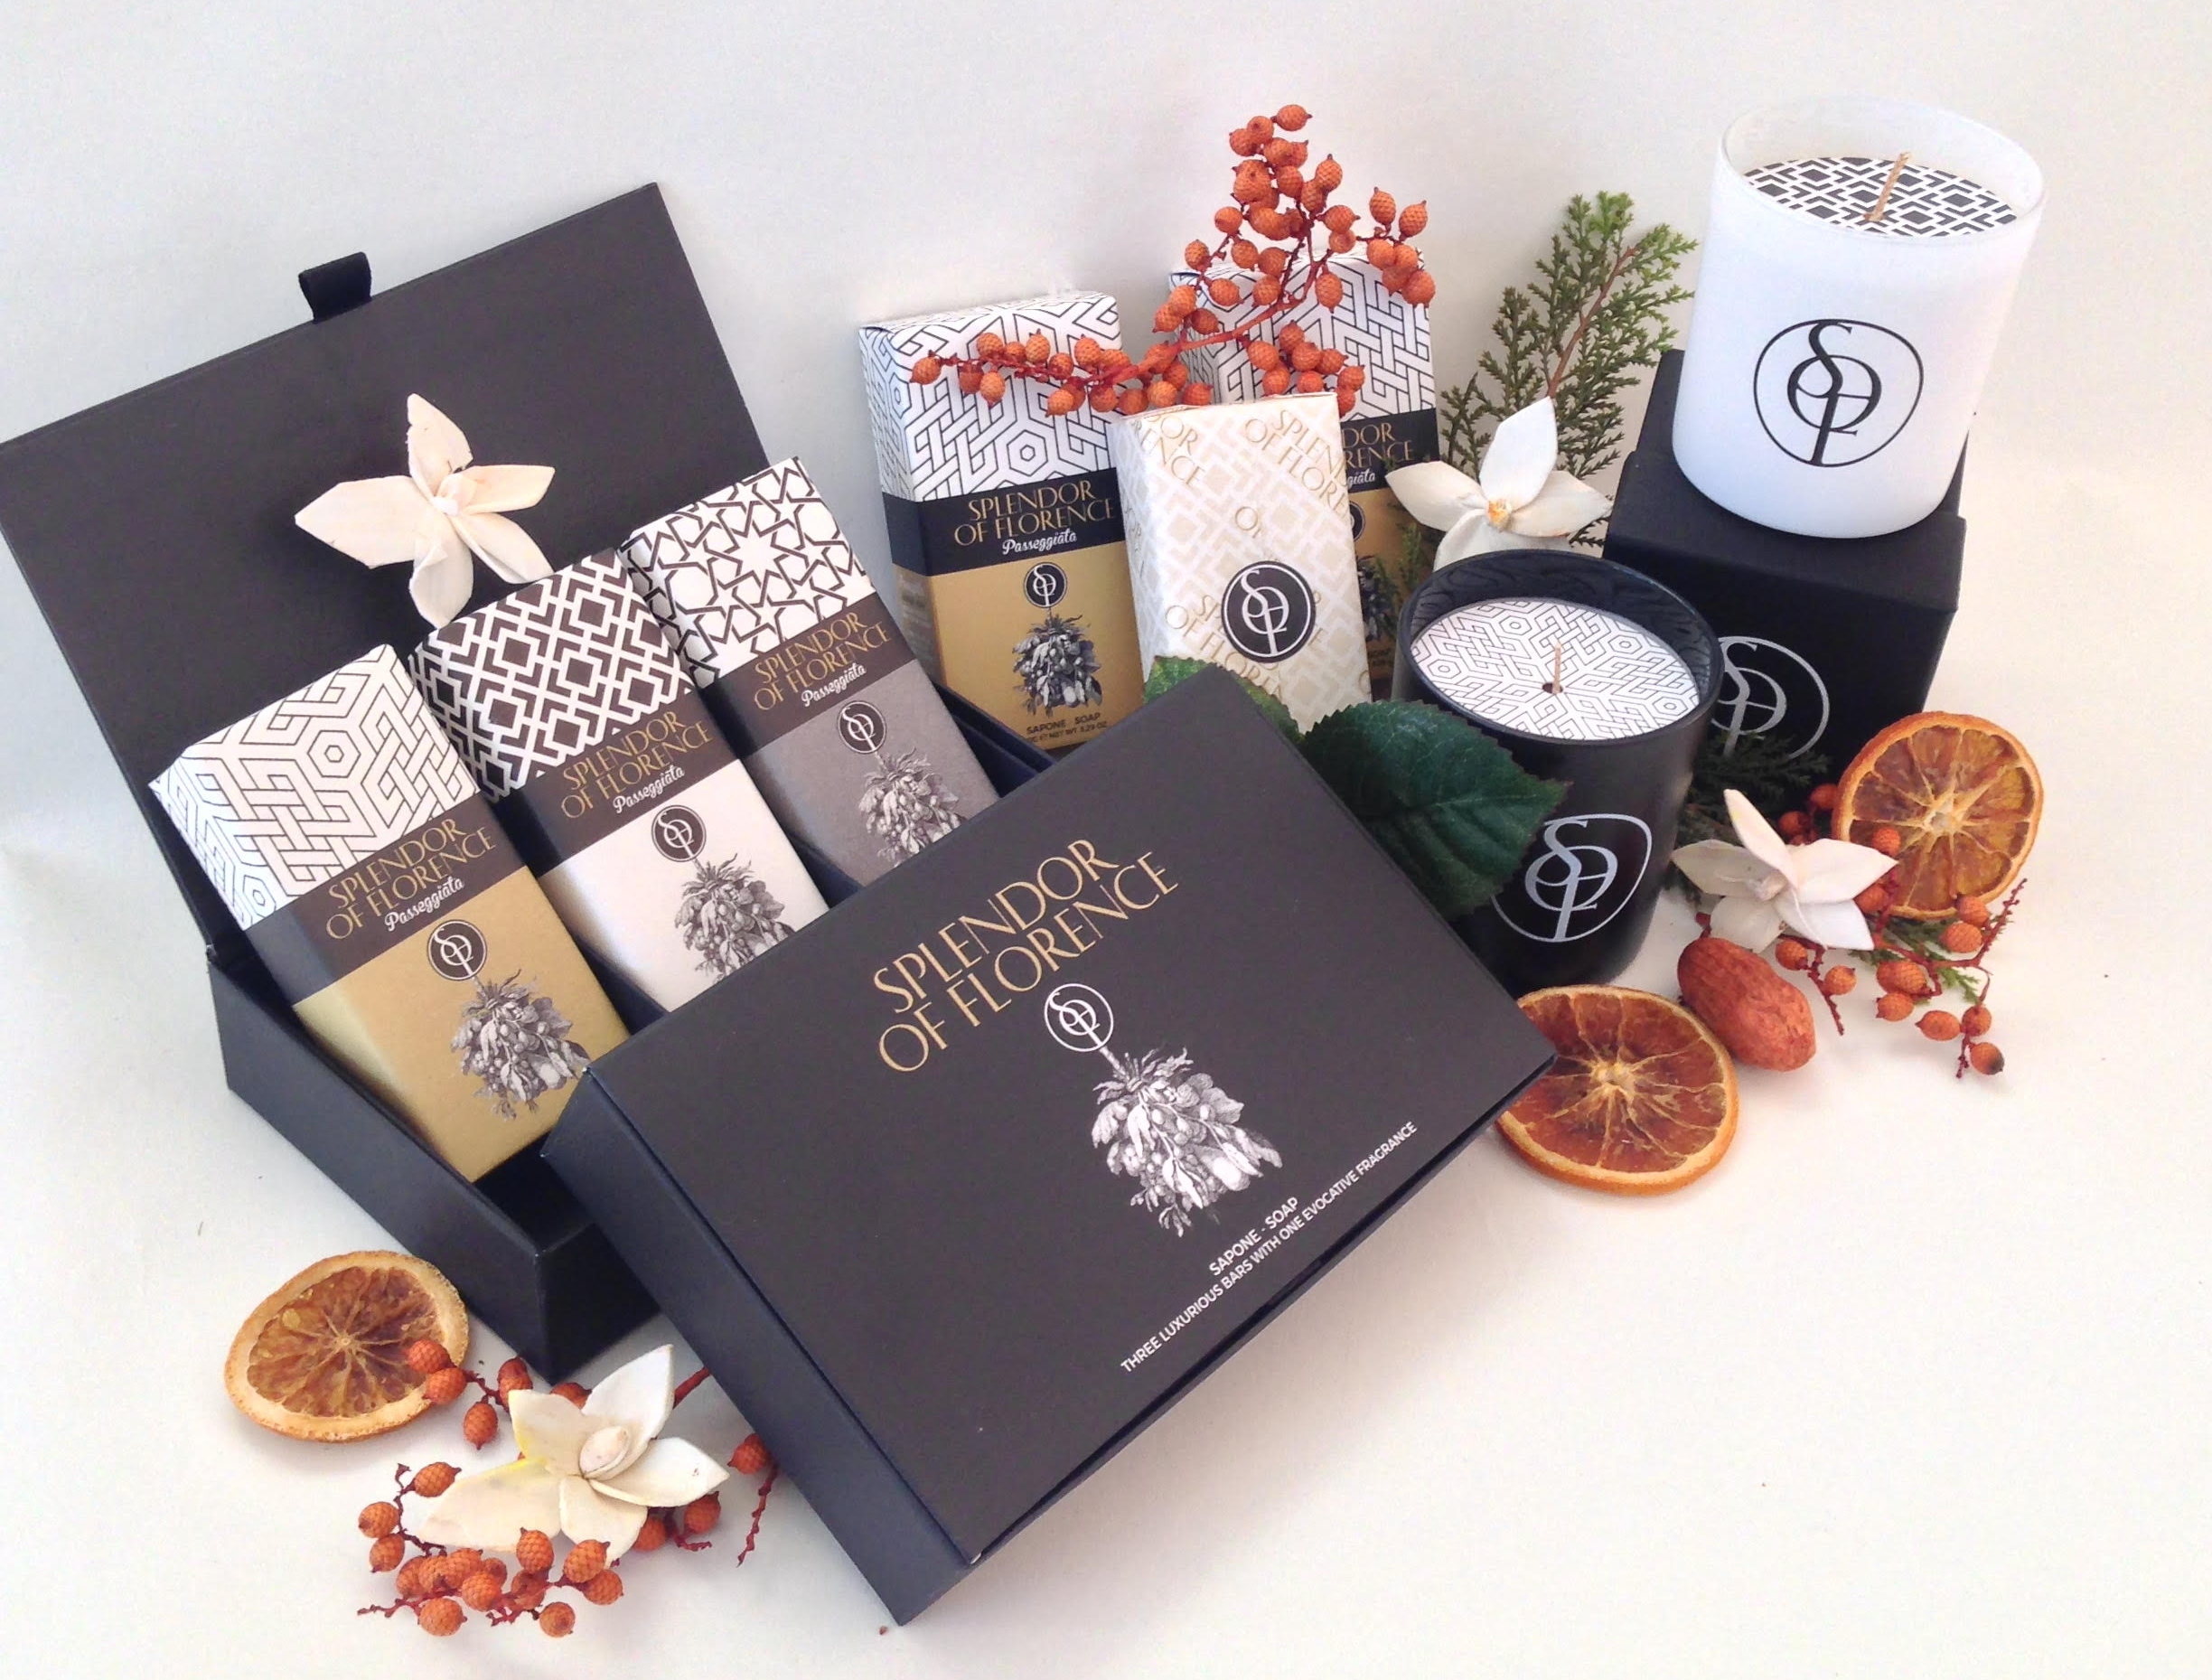 Splendor of Florence Passegiata soaps and candles